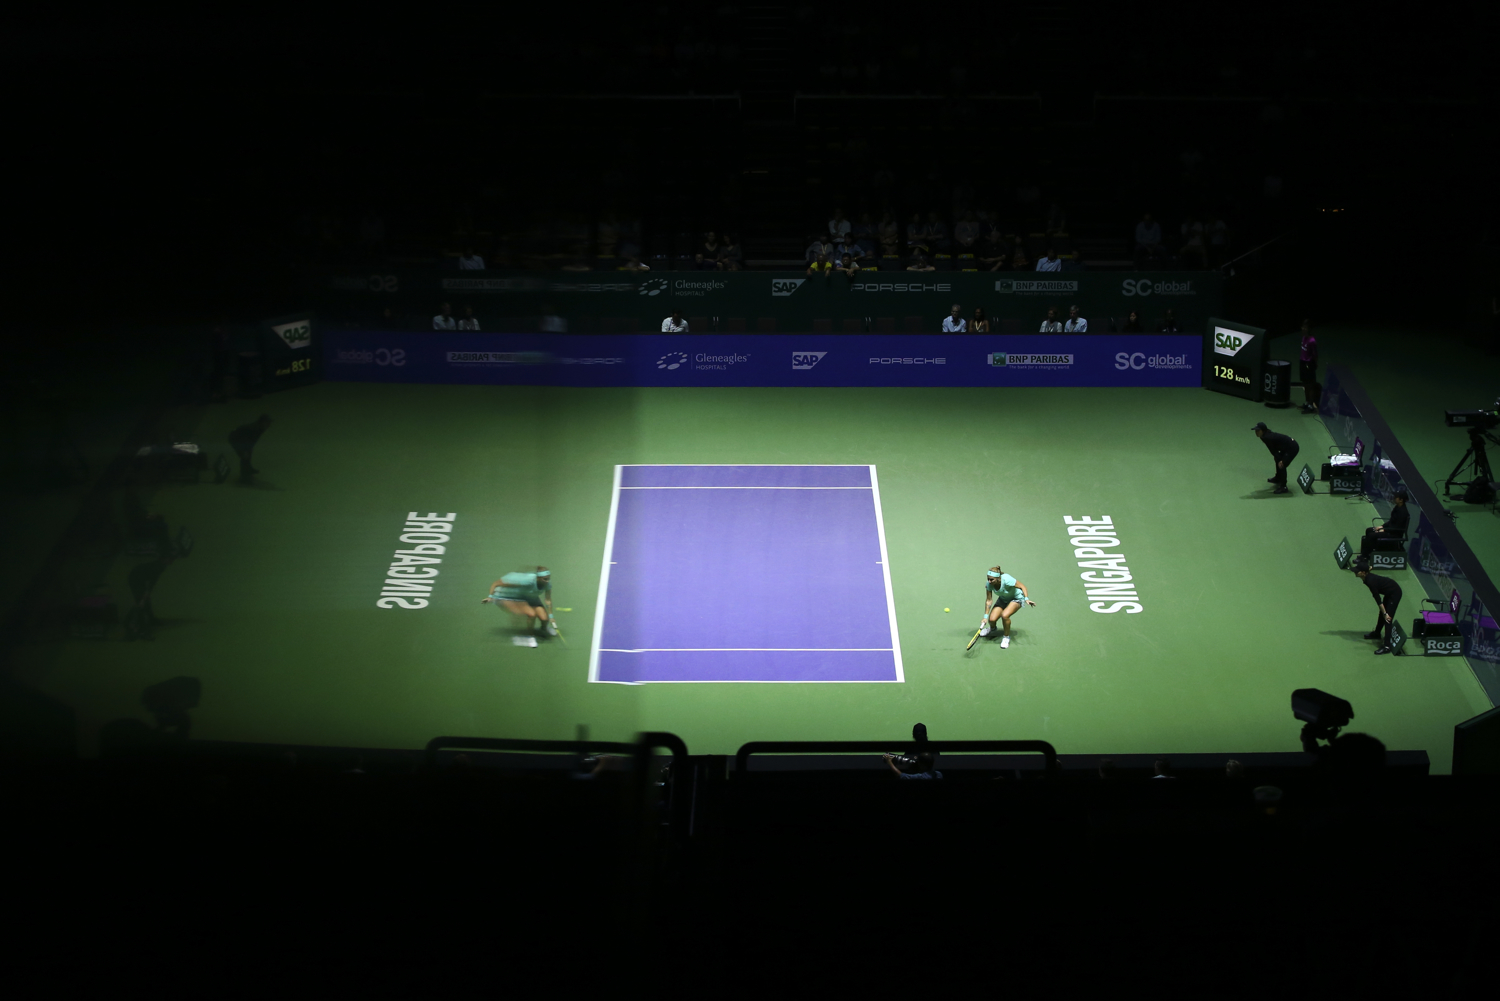 Tennis - BNP Paribas WTA Finals - Singapore Indoor Stadium - 26/10/16 Russia's Svetlana Kuznetsova in action during her round robin match Mandatory Credit: Action Images / Yong Teck Lim Livepic EDITORIAL USE ONLY.